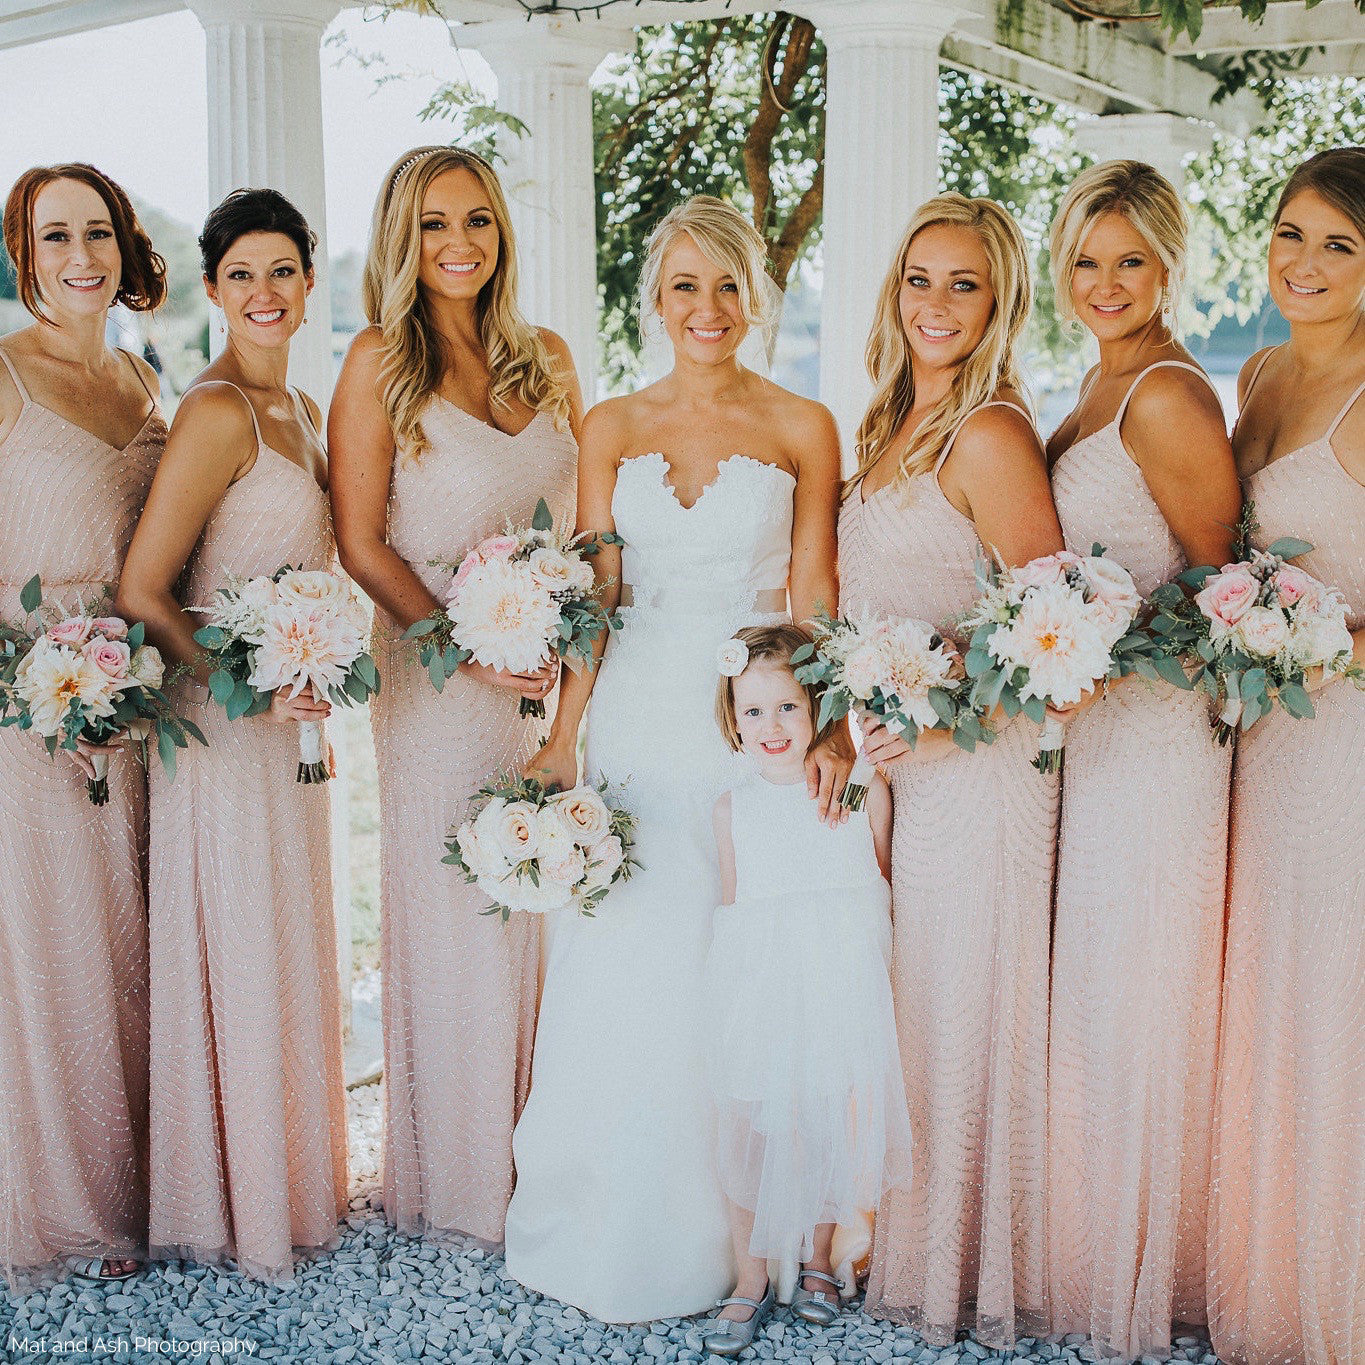 Bridal party bouquets in blush and sage green with cafe au lait dahlias.